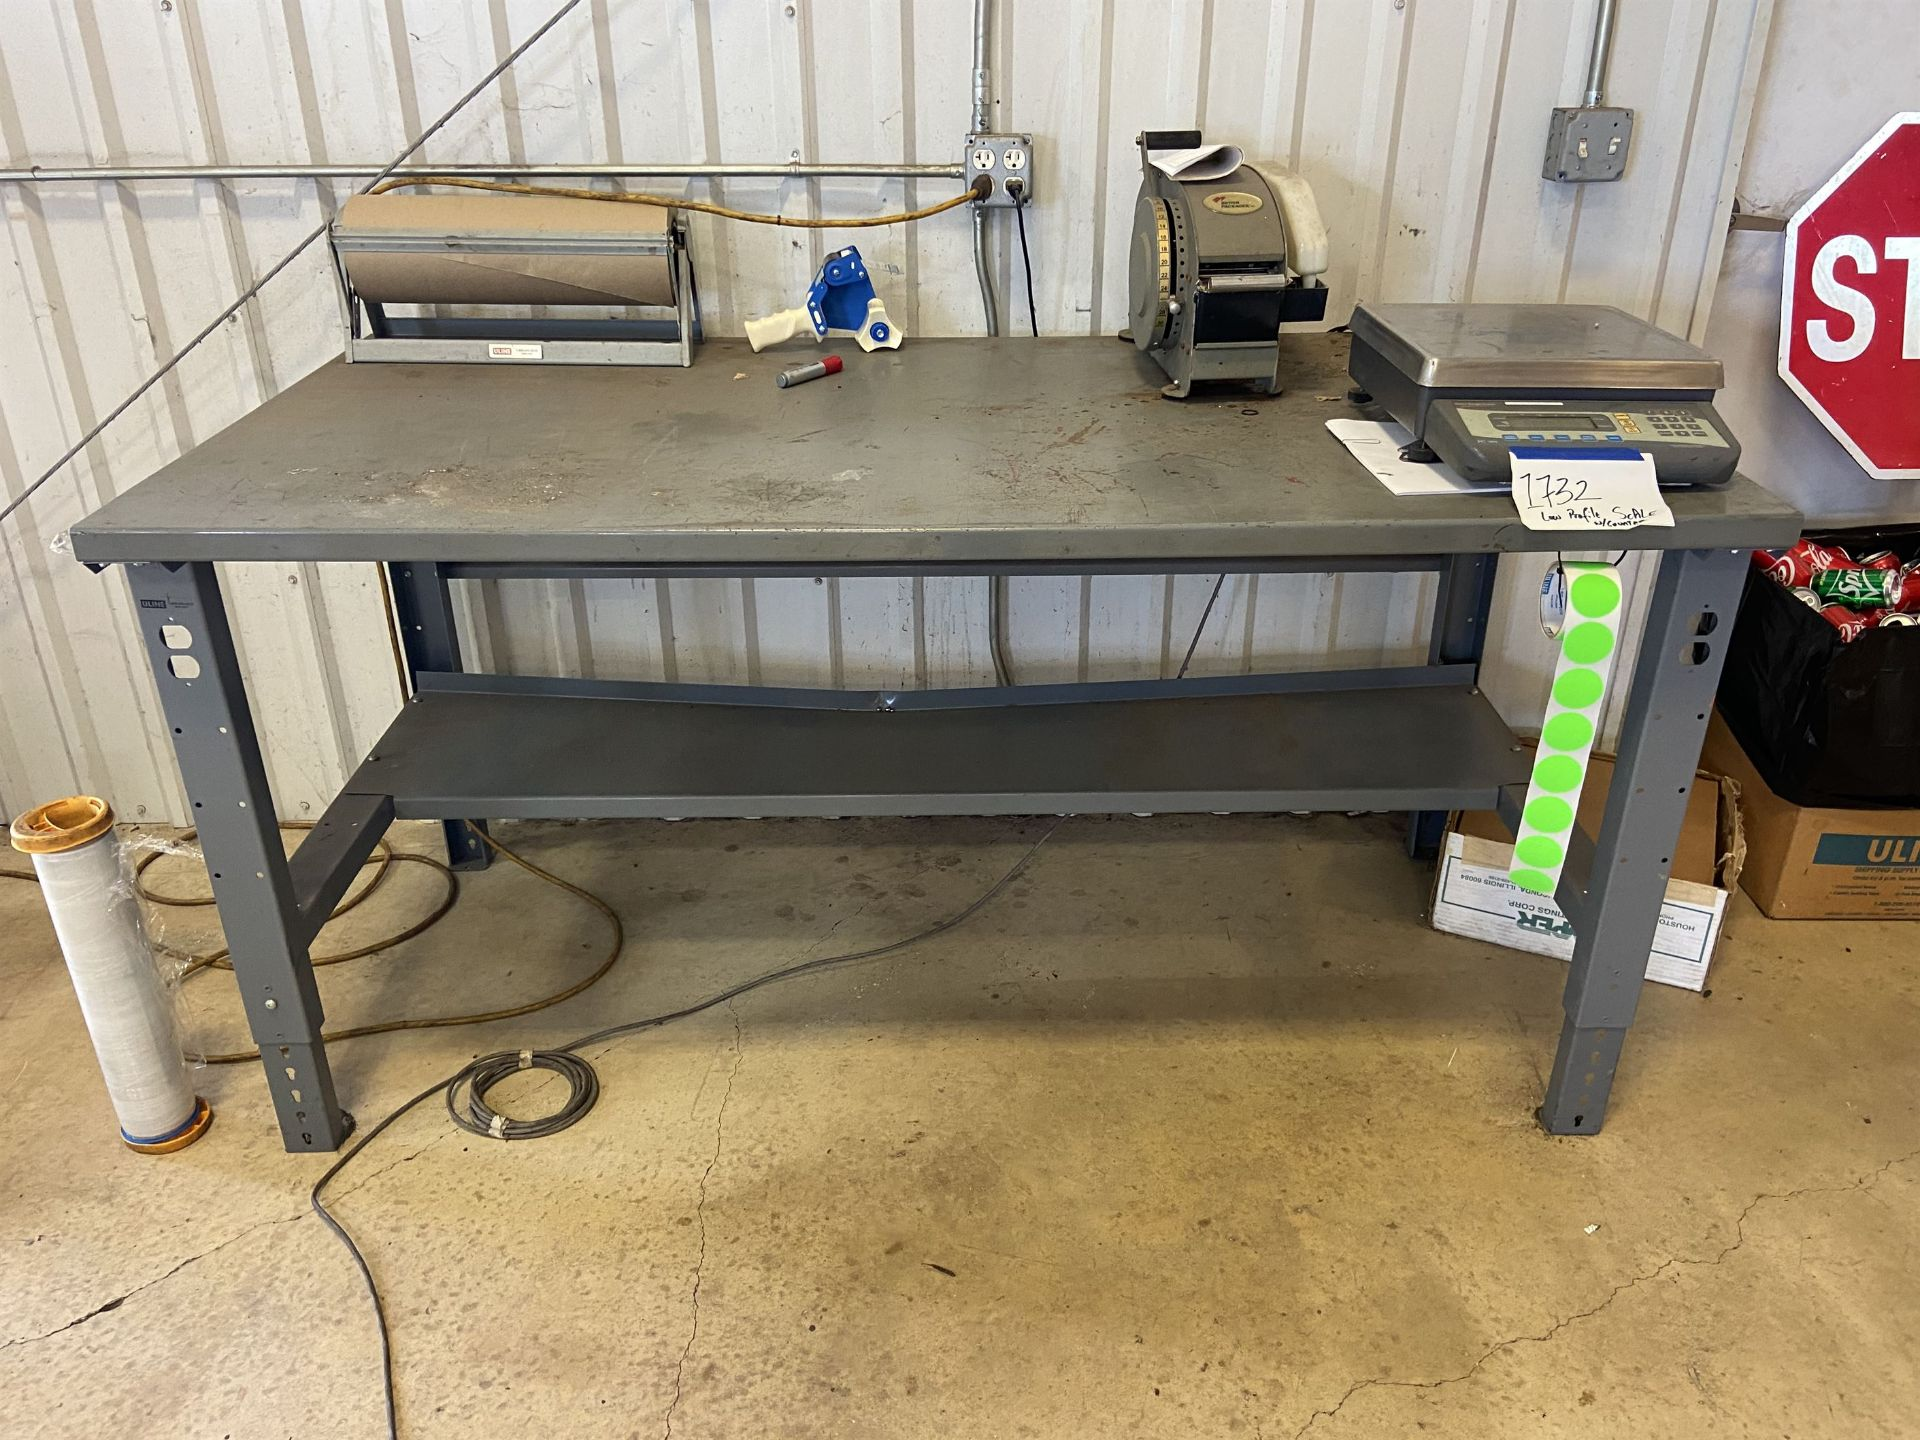 4x4 Scale with Bench Reader and Shipping Area - Image 5 of 5